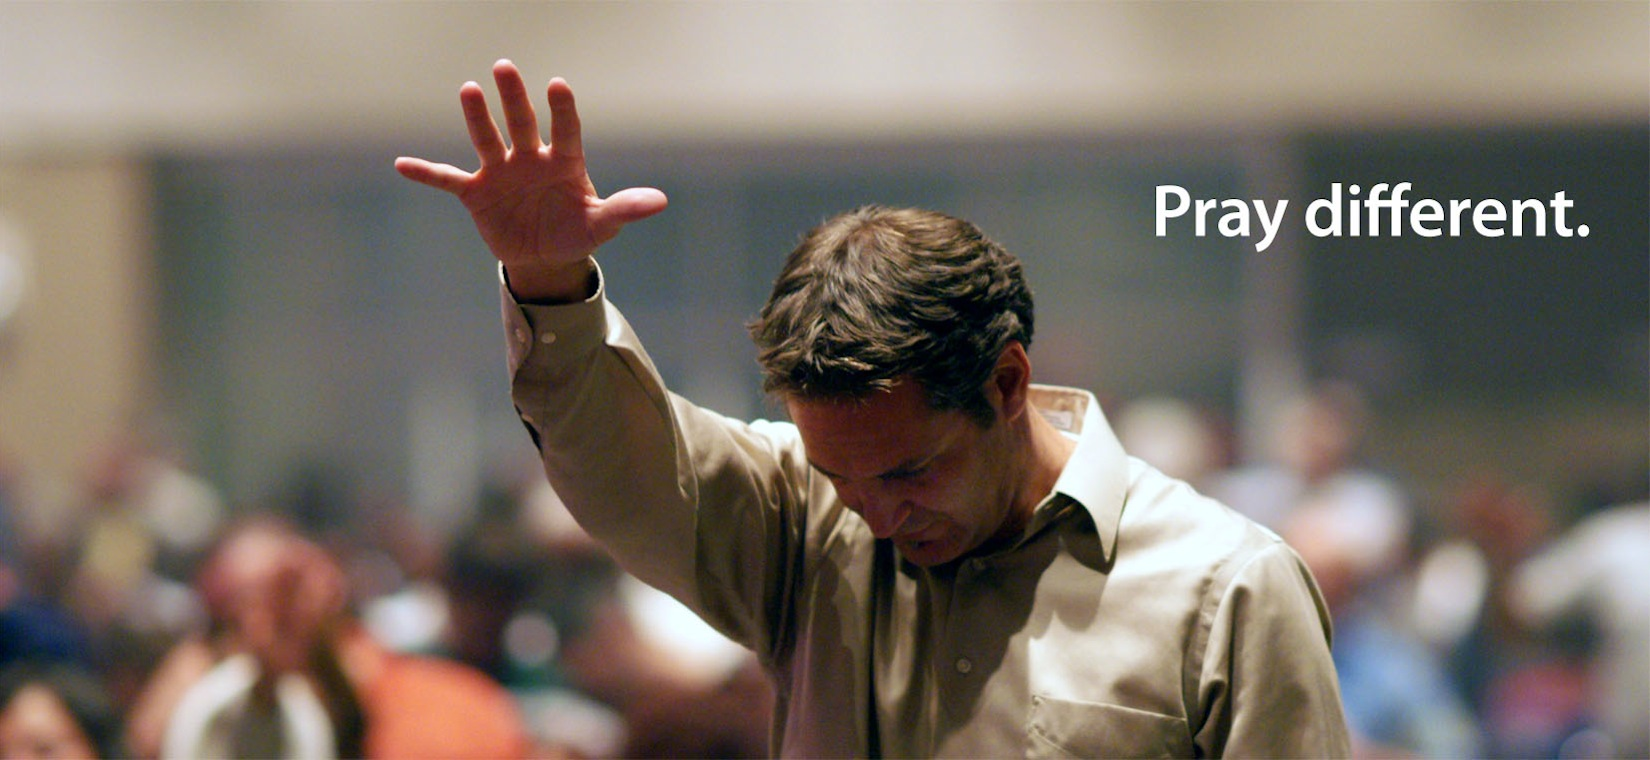 politics hoosier christians pray - 1650×760